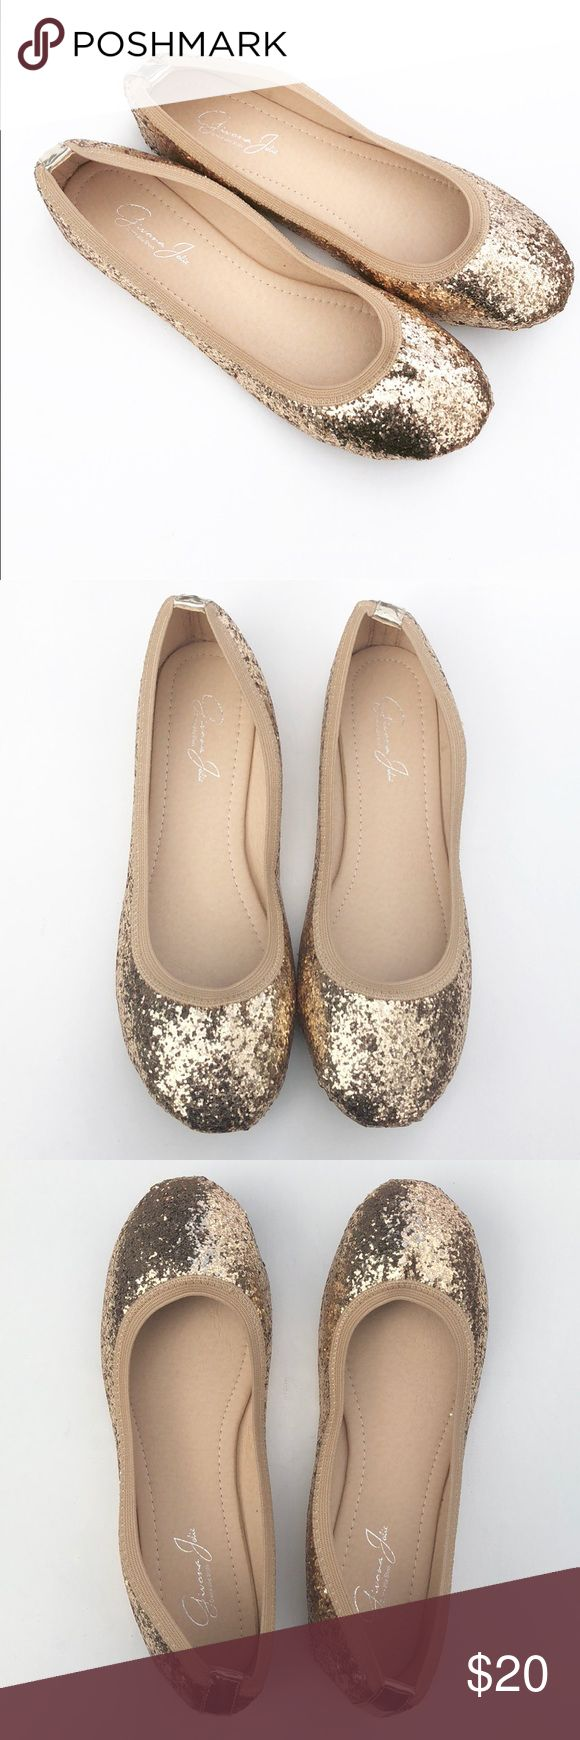 Like New Glitter Gold Ballet Flats These stunning shoes were worn once no noticeable flaws on top. Wear only visible on bottom sole. Clean inside. These are very attractive shoes. Givana Jolie Shoes Flats & Loafers